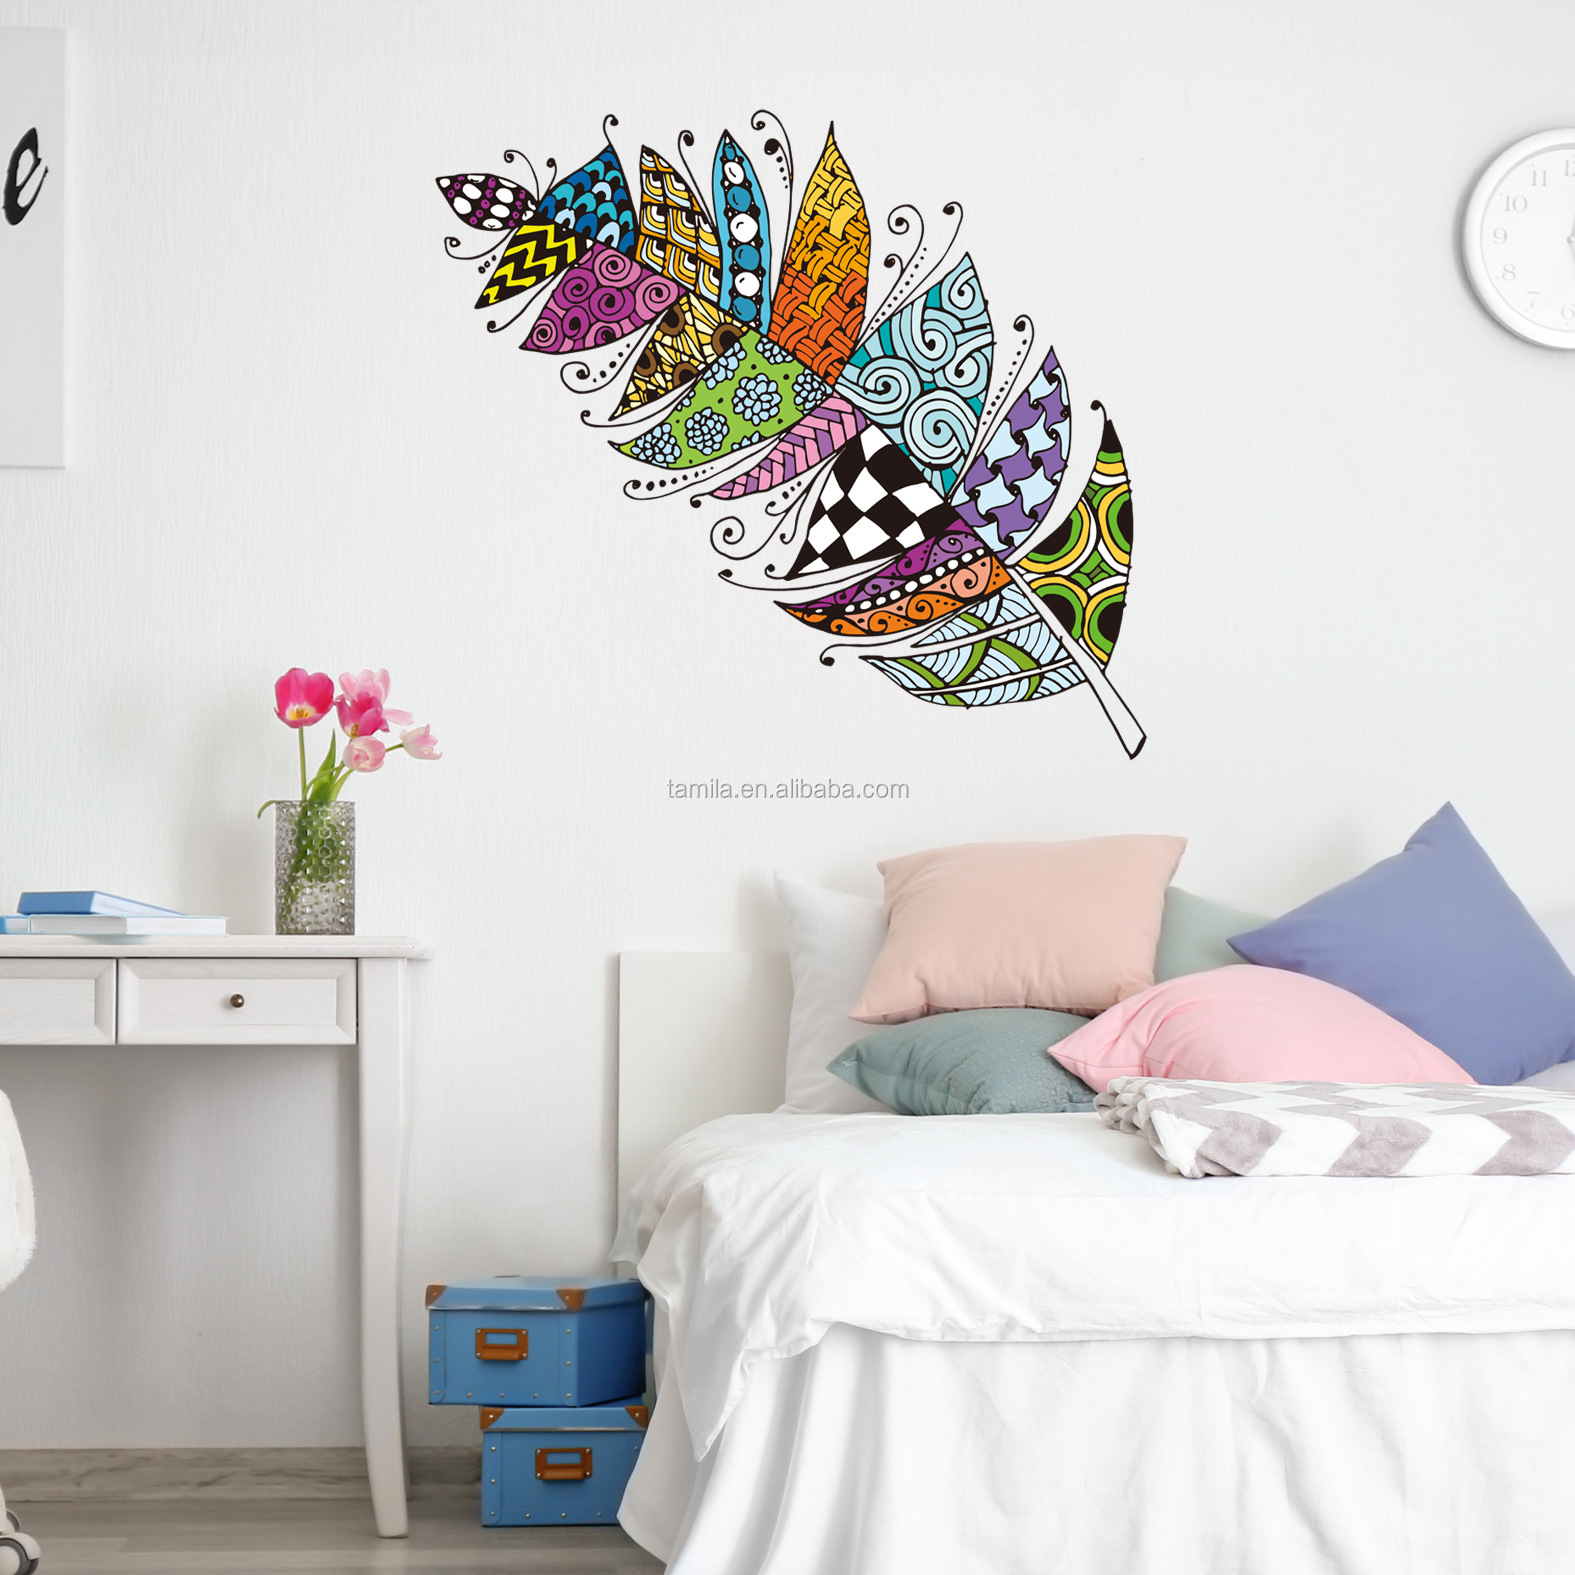 New hand painted feather wall stickers for kids bedroom living room fashion colorful wall decals modern home decor wallpaper